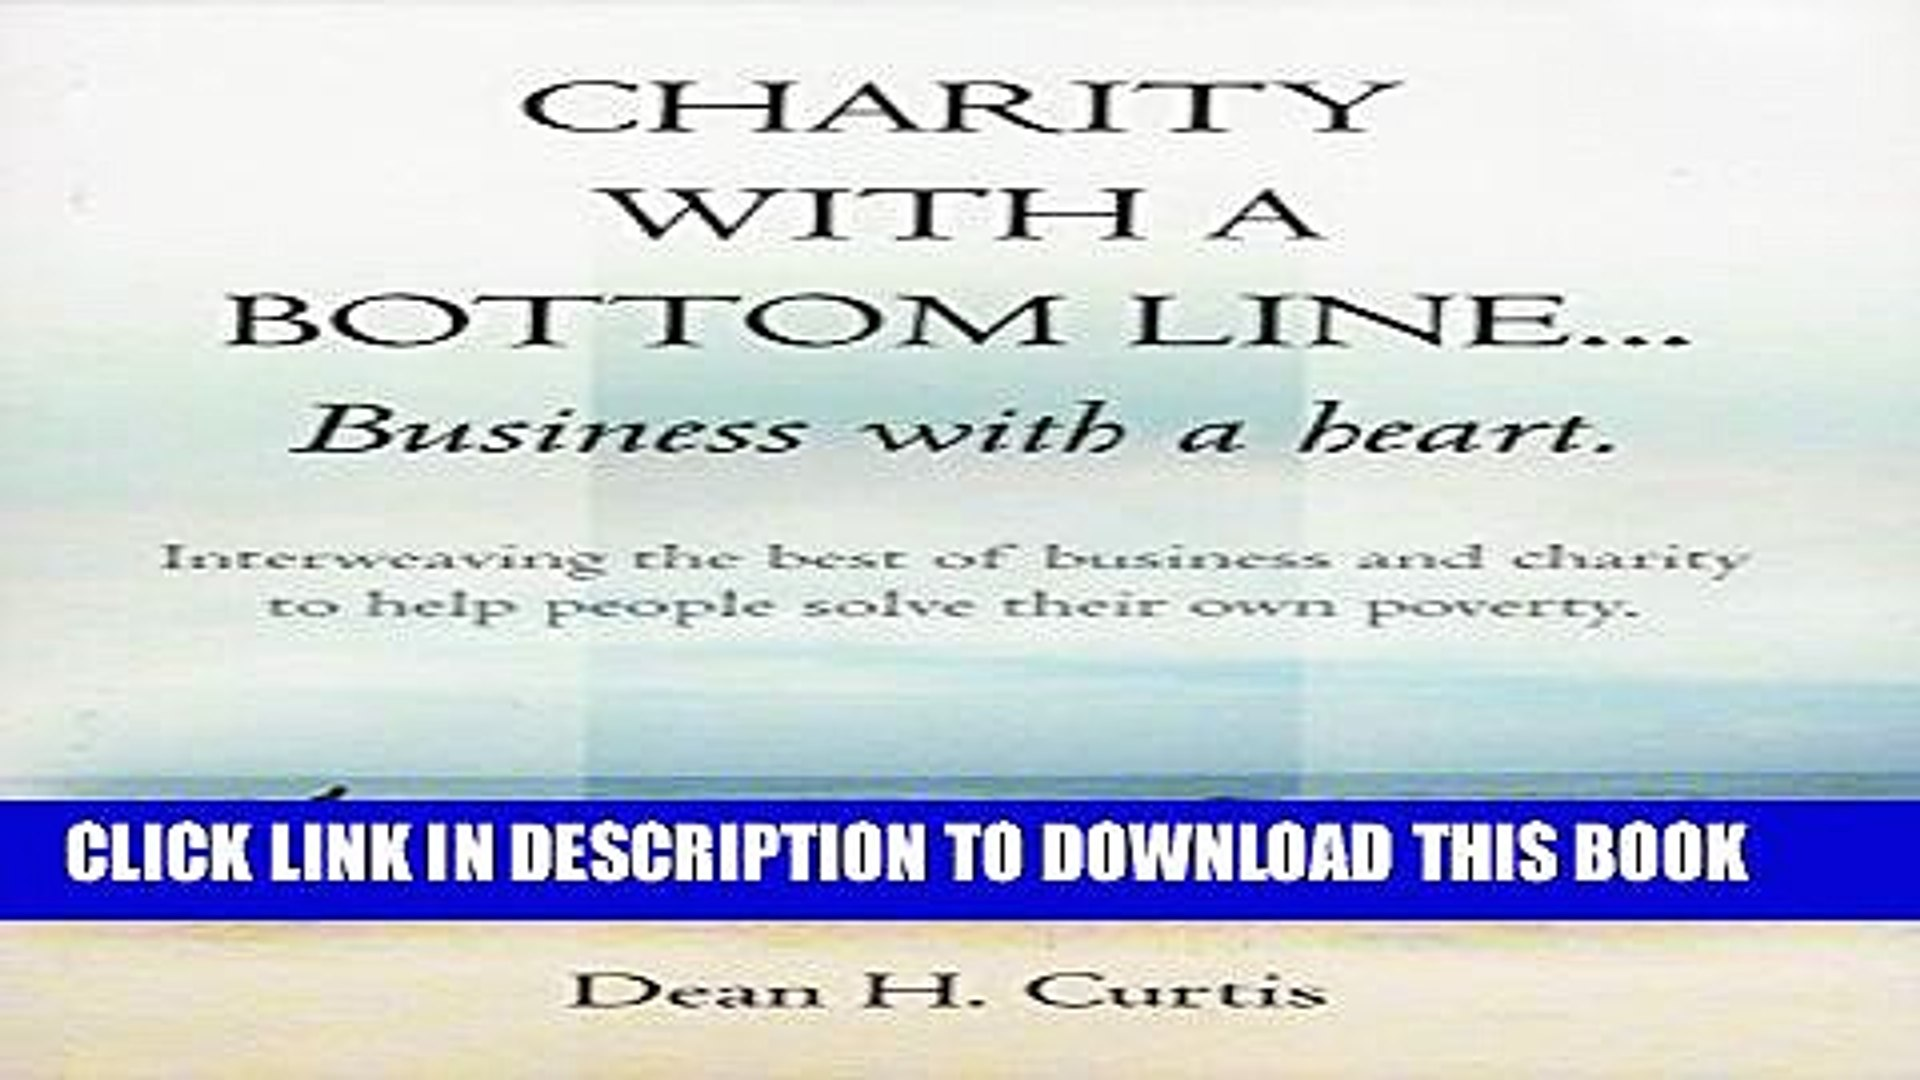 [New] Charity With A Bottom Line...Business With A Heart Exclusive Full Ebook